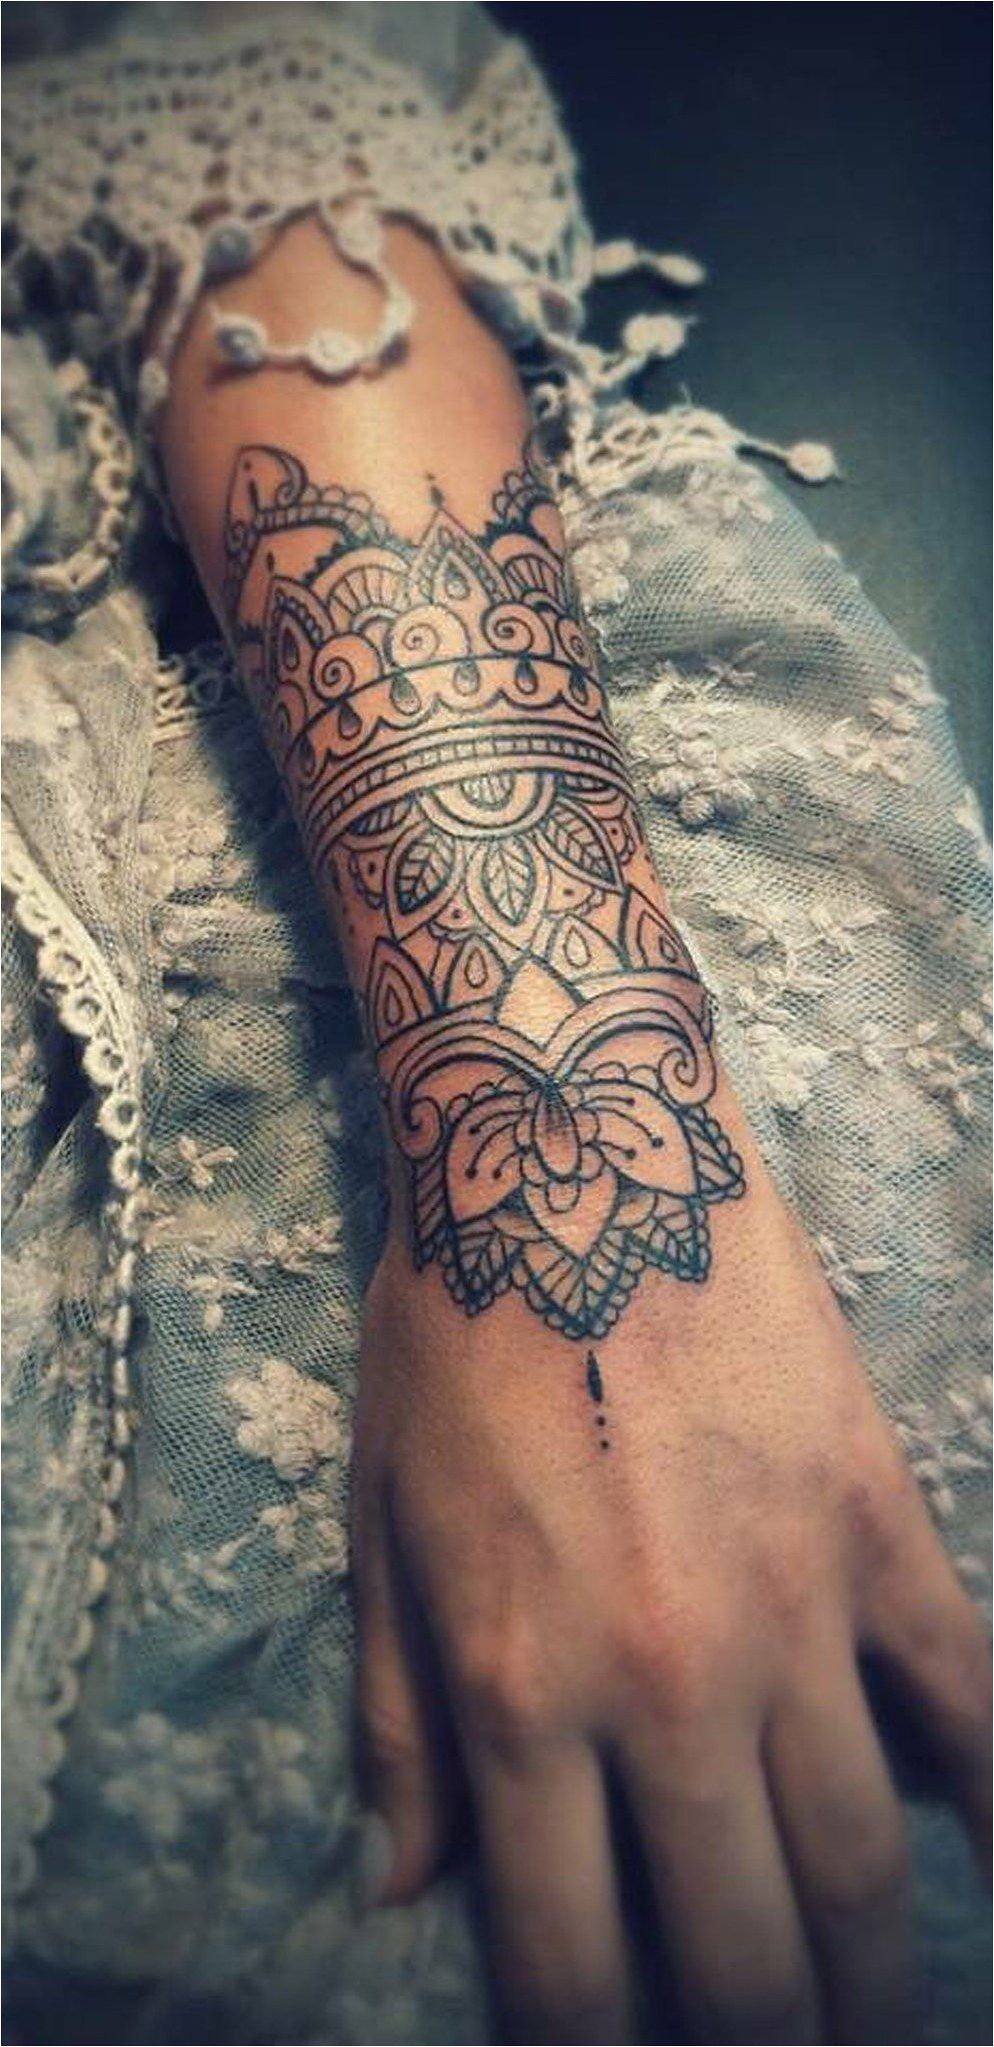 9c895c2ea #Tattoo Mandala Outer Forearm Tattoo Ideas for Women - Black Henna Floral  Flower Lotus Arm